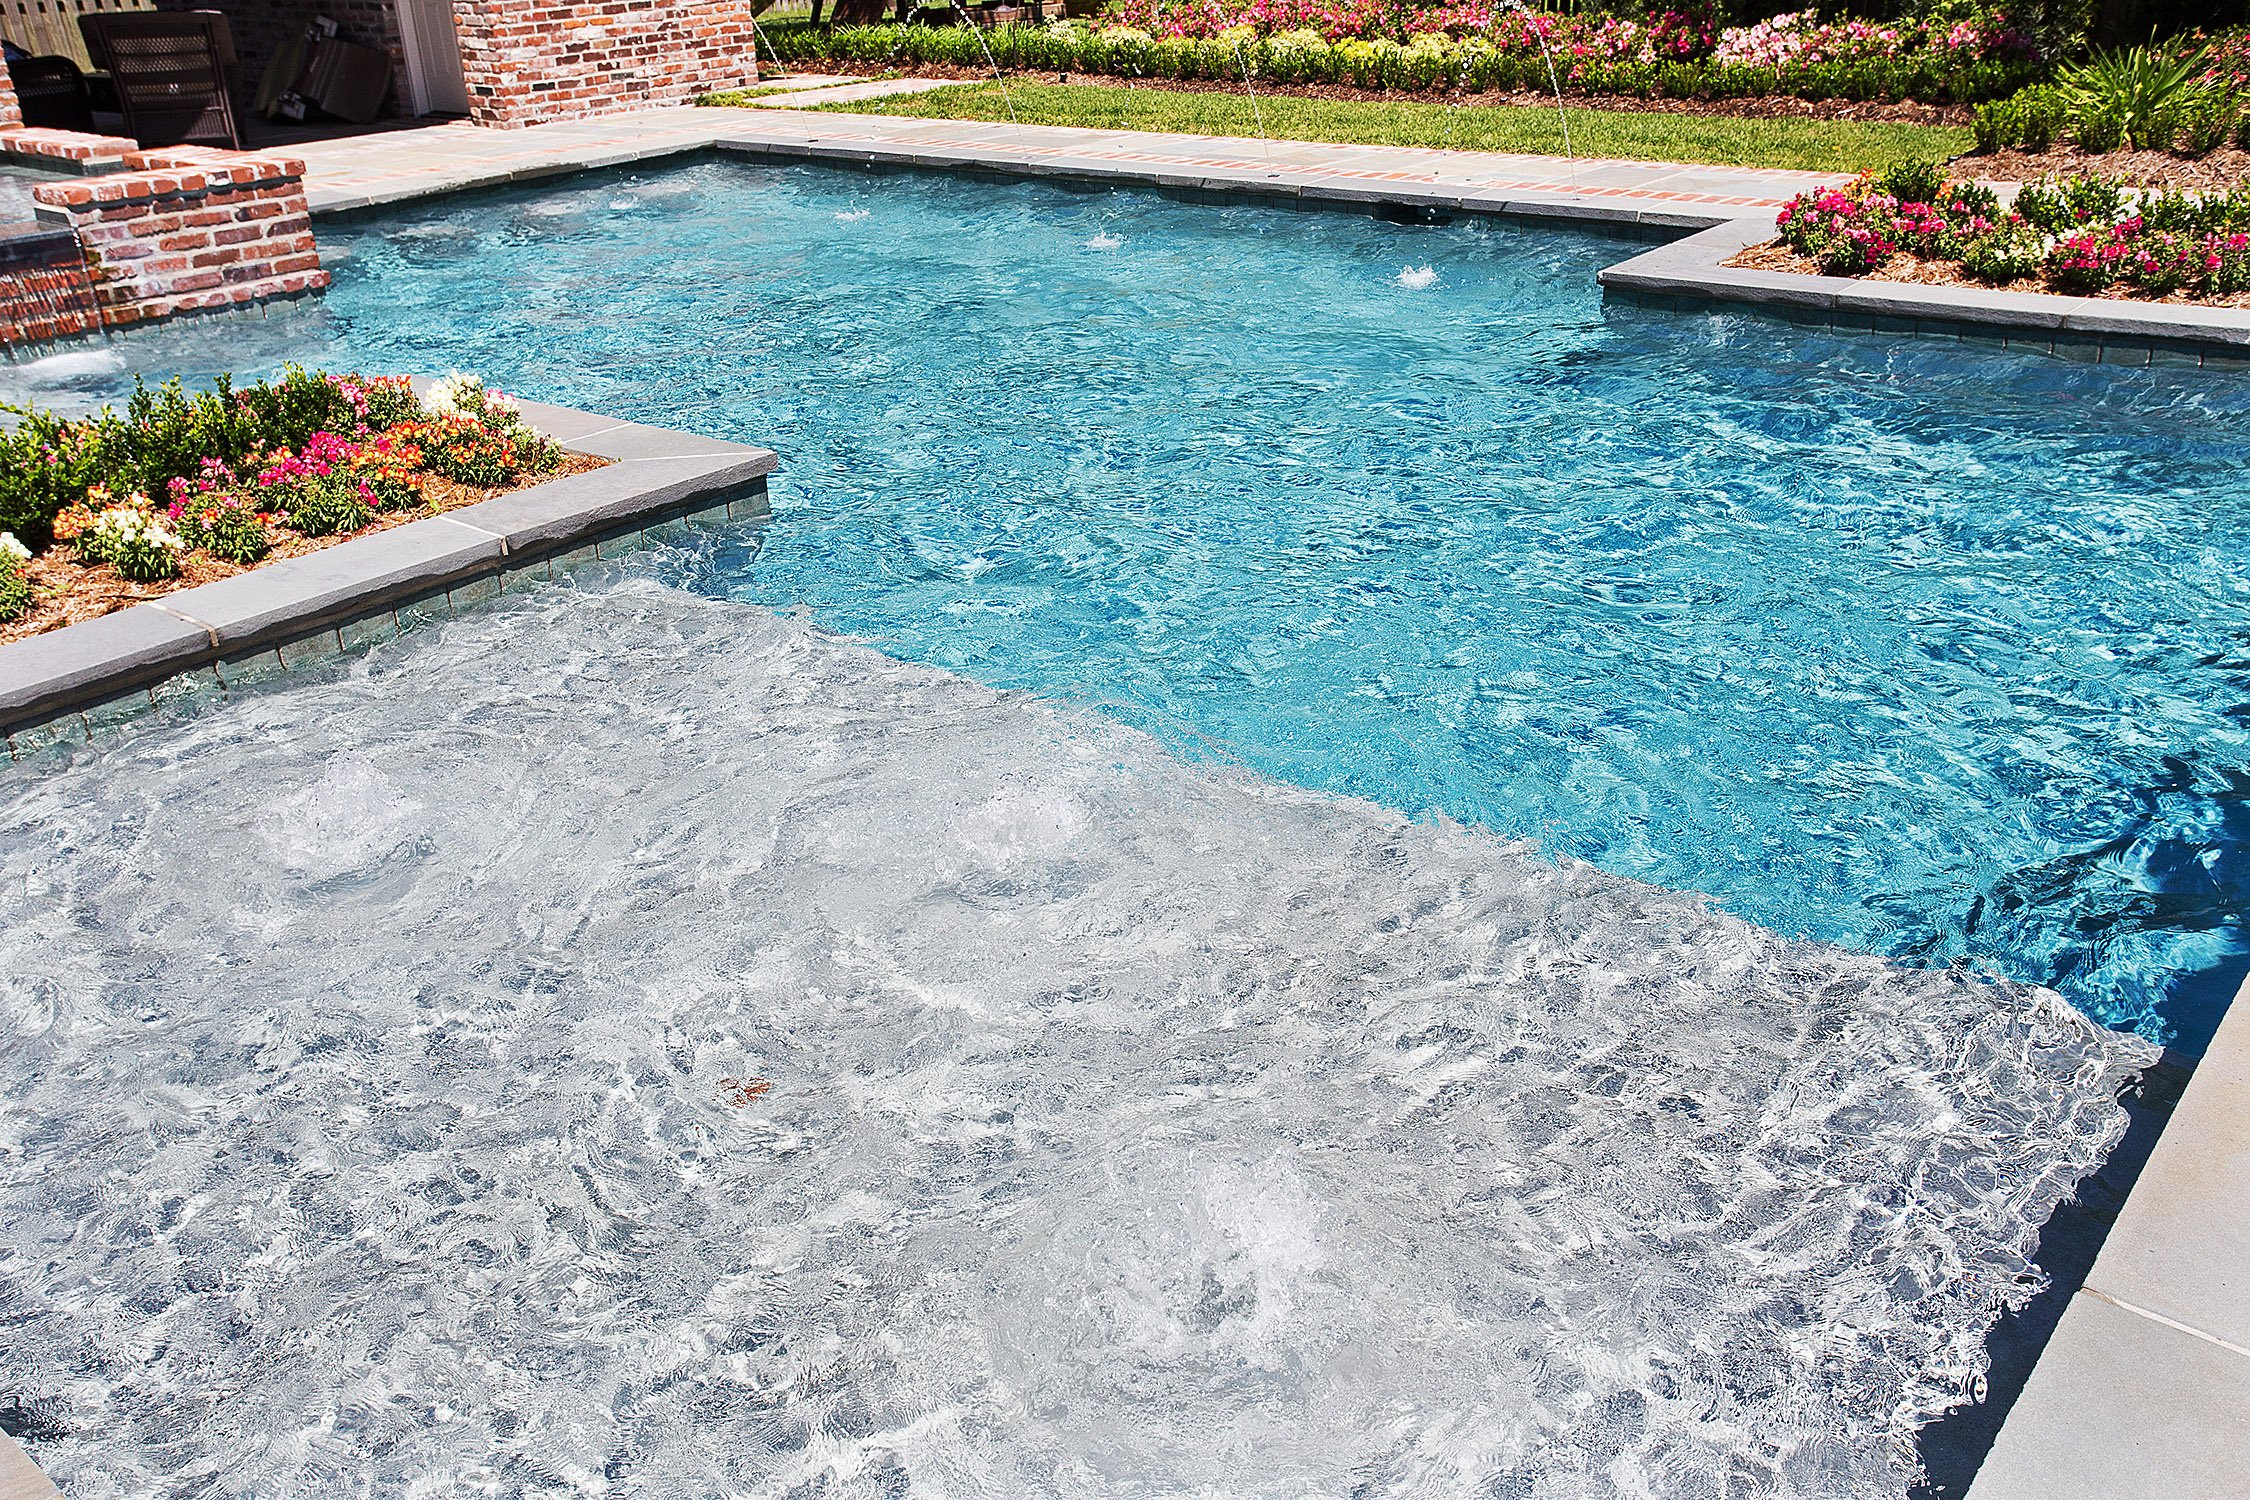 Gunite pools baton rouge with tanning ledge